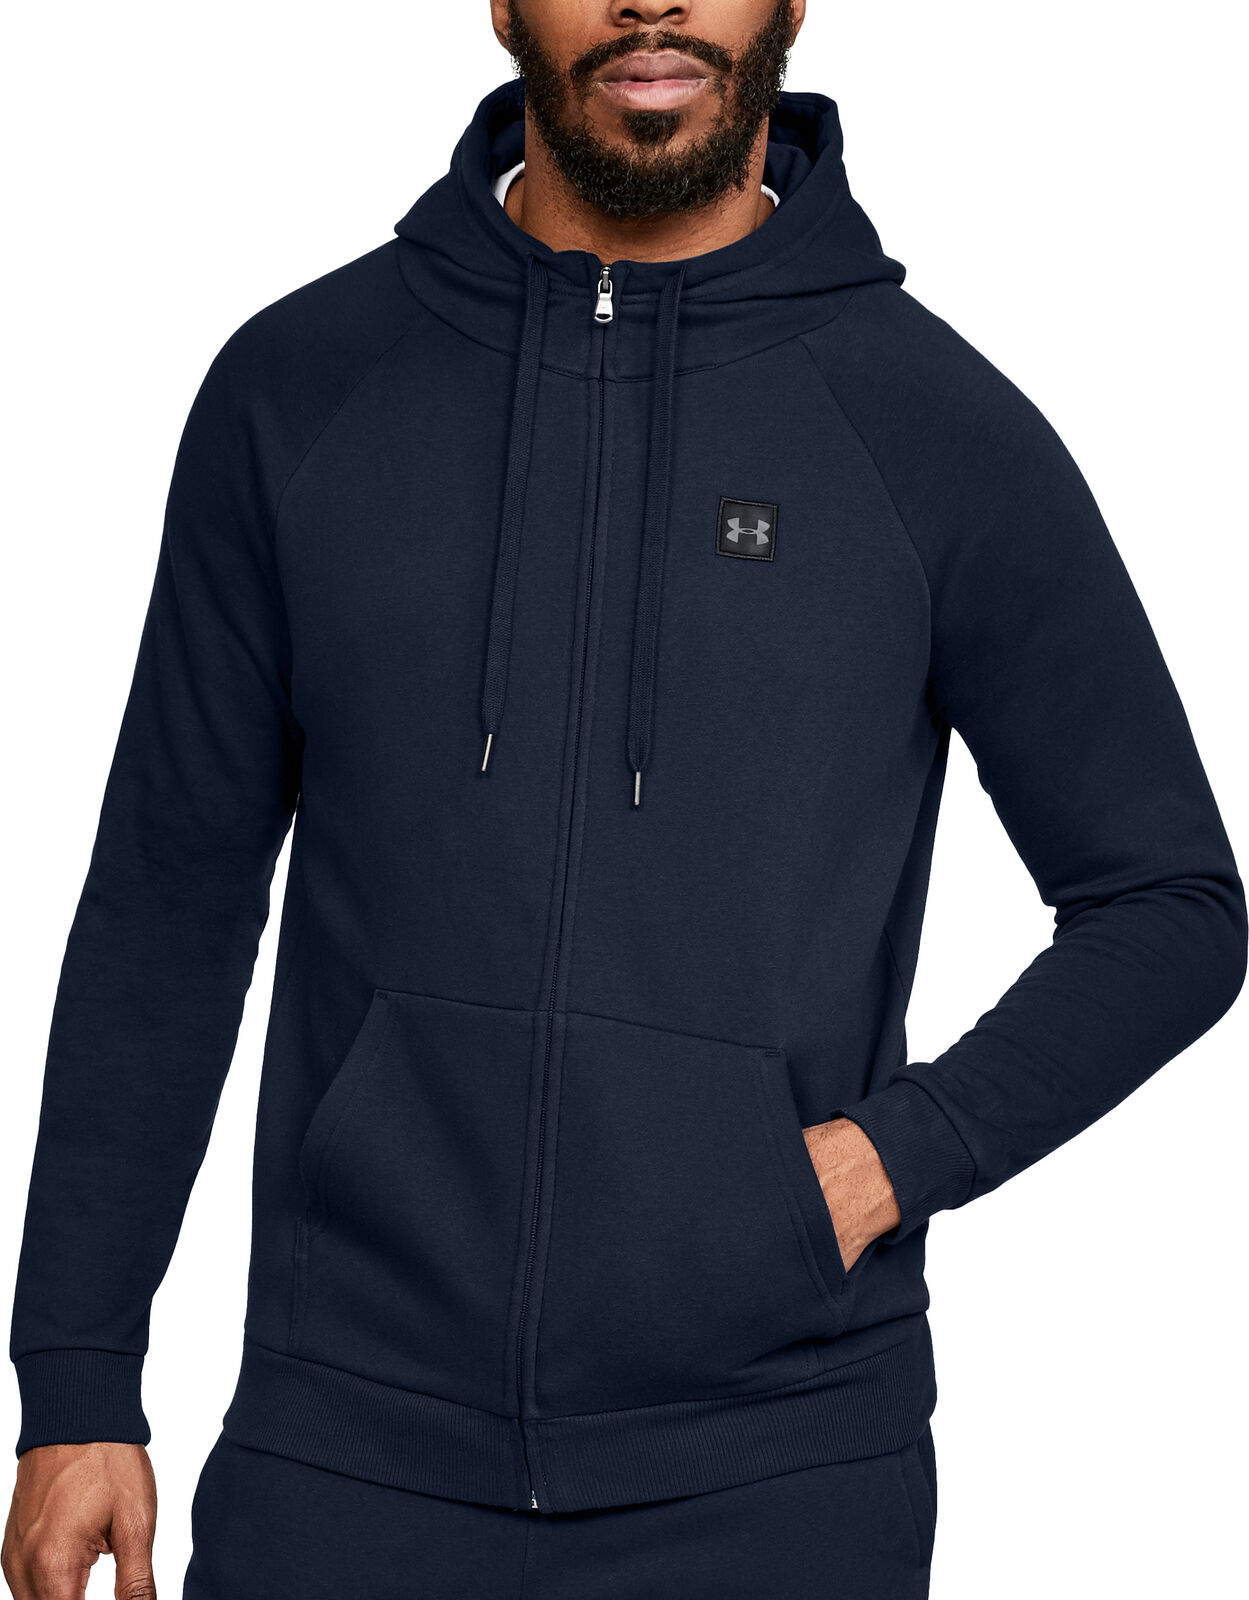 Under Armour Rival Rival Rival  Herren Full Zip Training Hoody - Navy a32aff